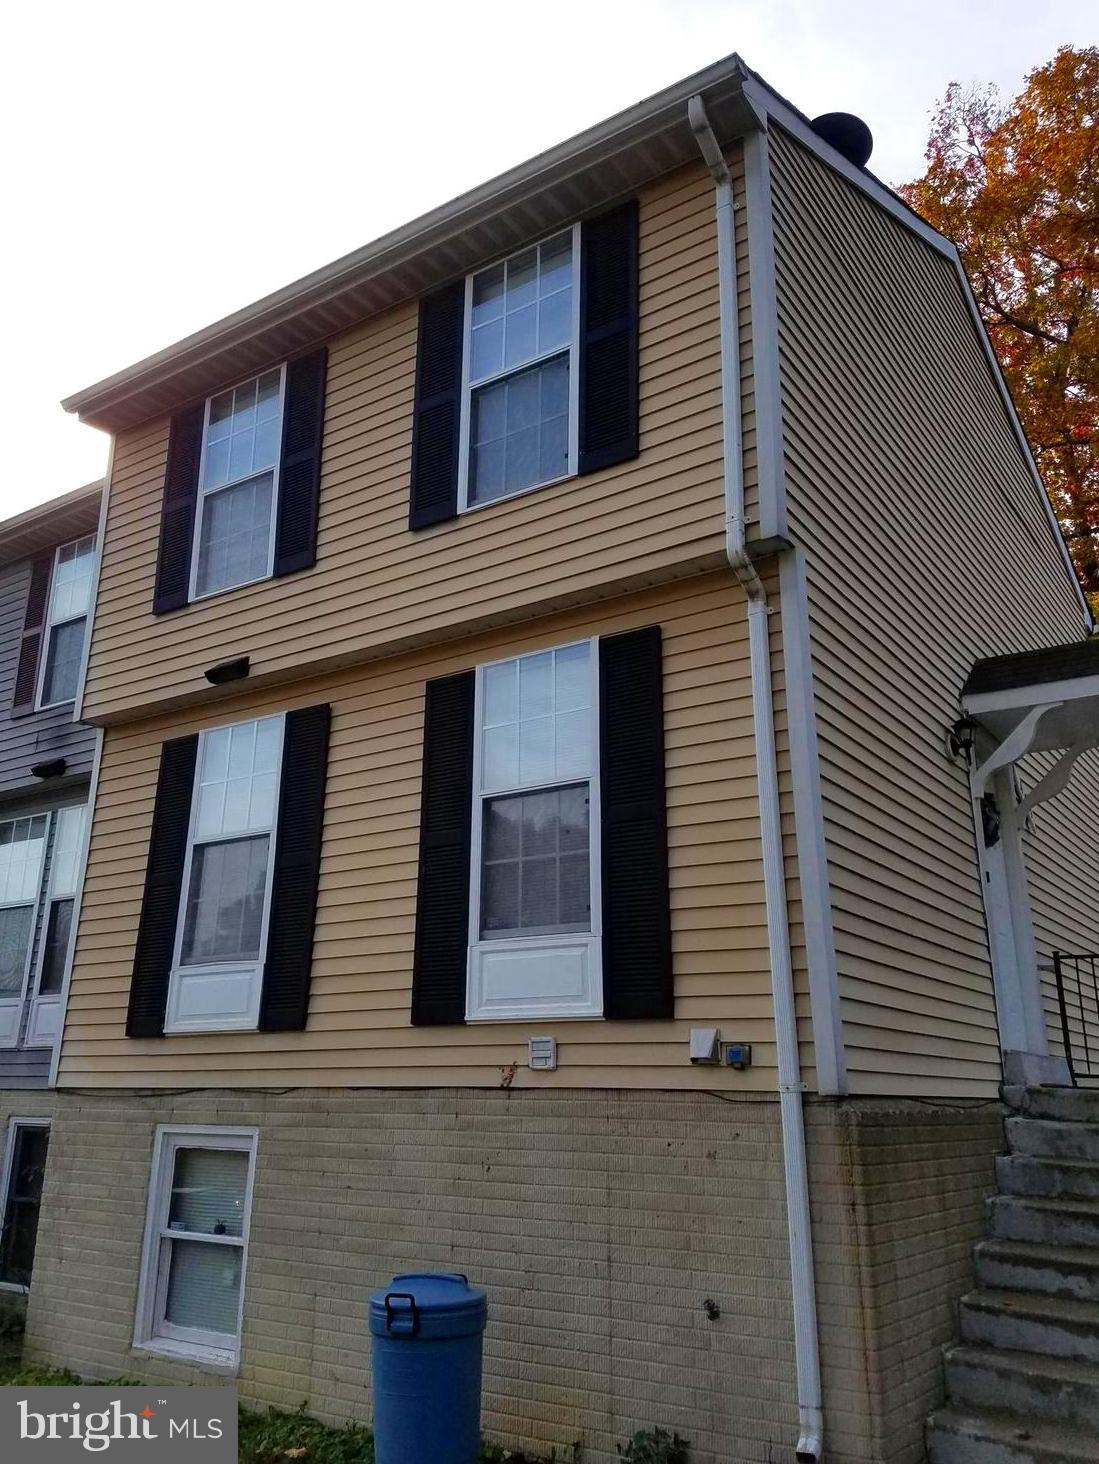 Attention Investors! Long-term tenants would like to stay and current monthly rents are $1,325. End